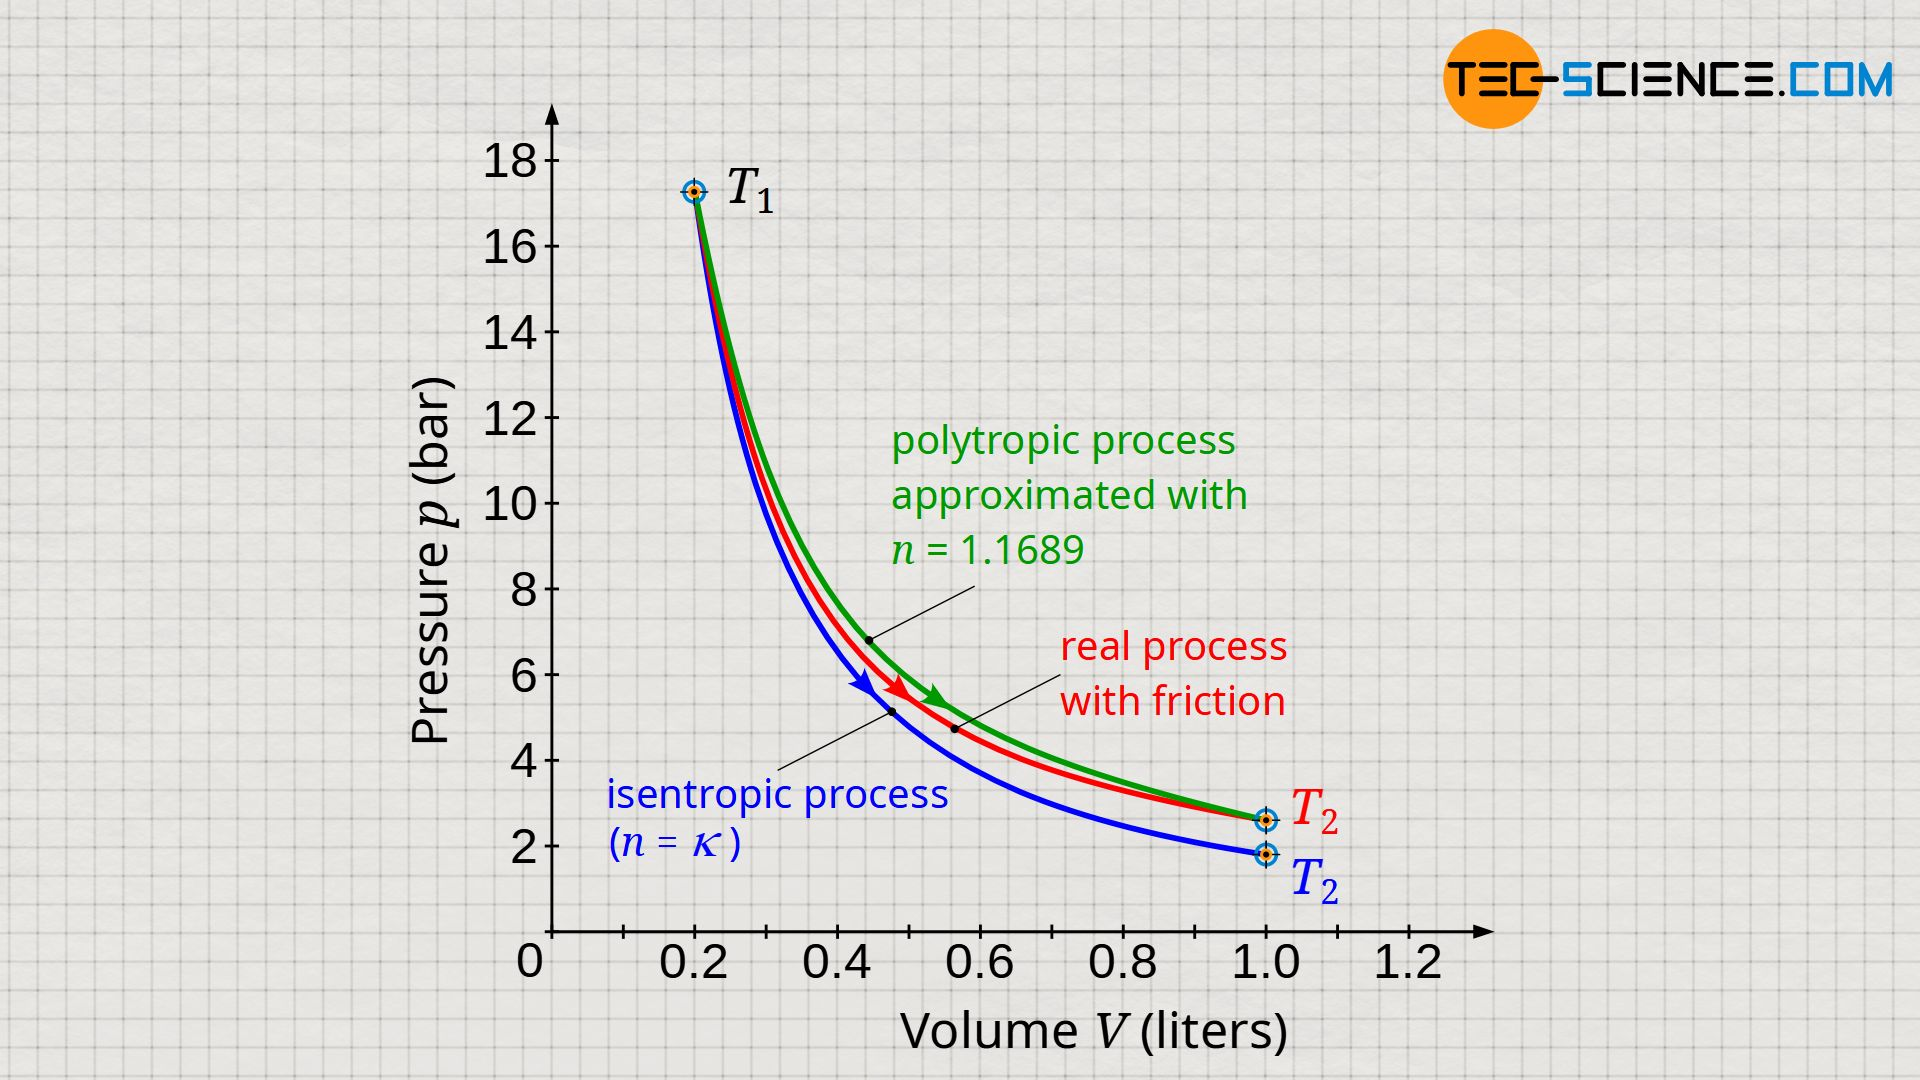 Polytropic process approximated to the frictional process